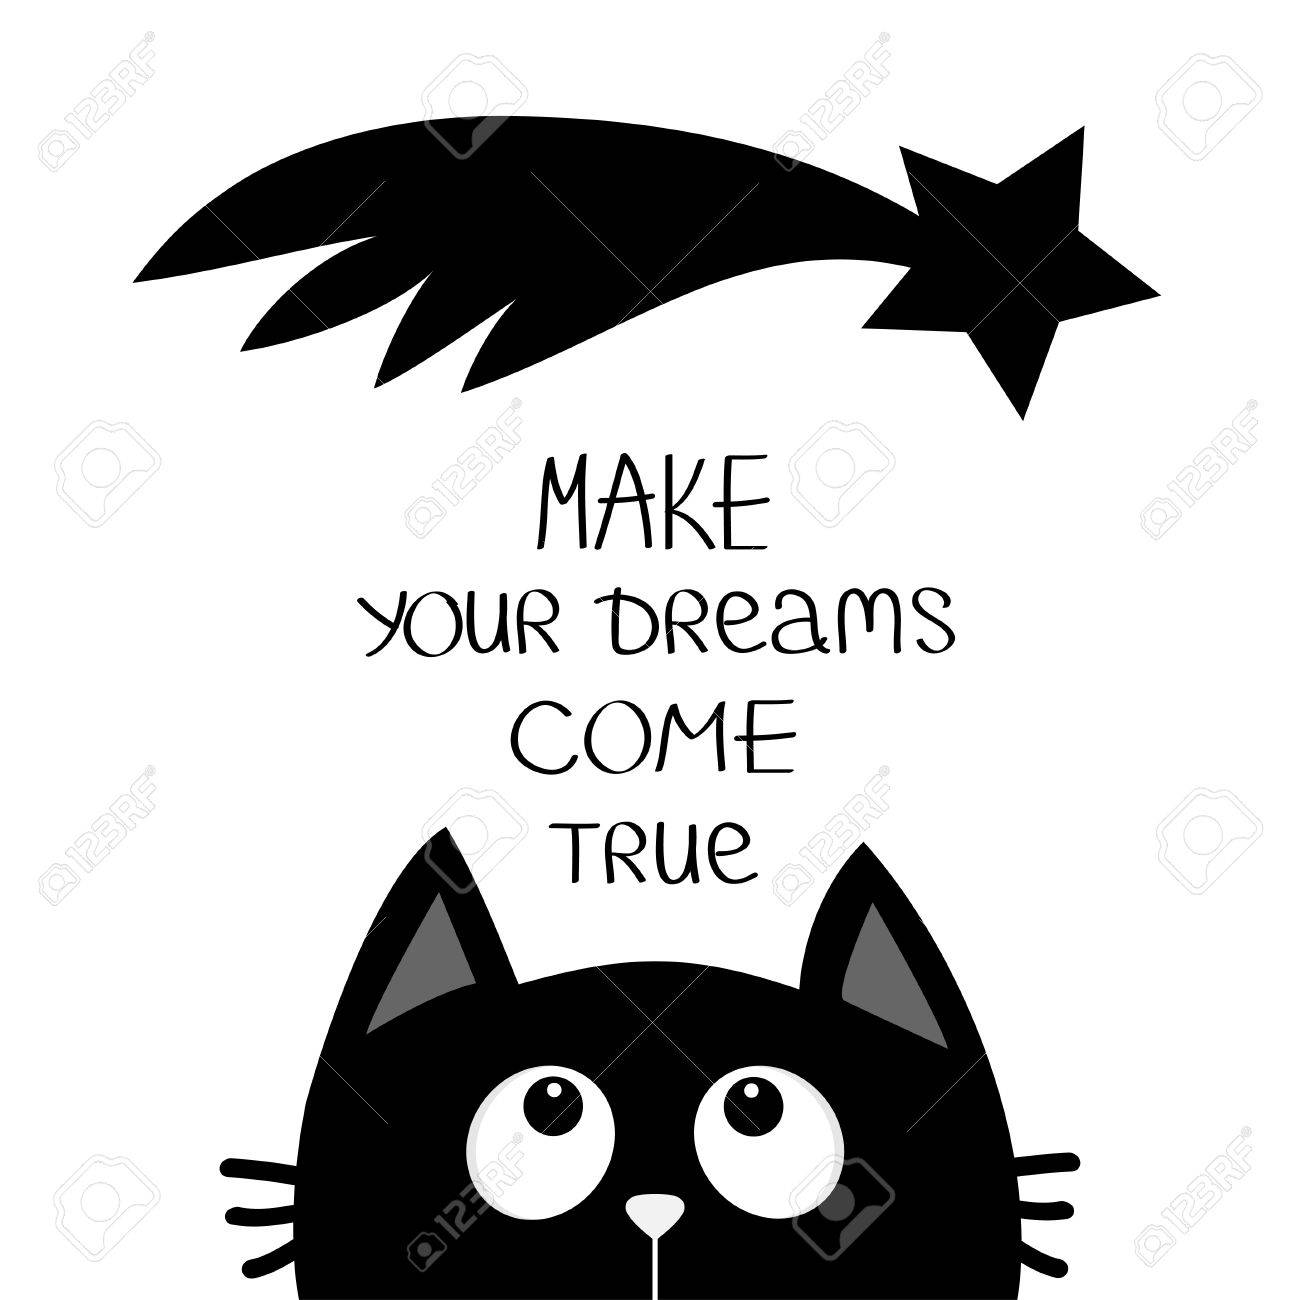 Cat Stock Quote Black Cat Looking Up To Star Cometmake Your Dreams Come True